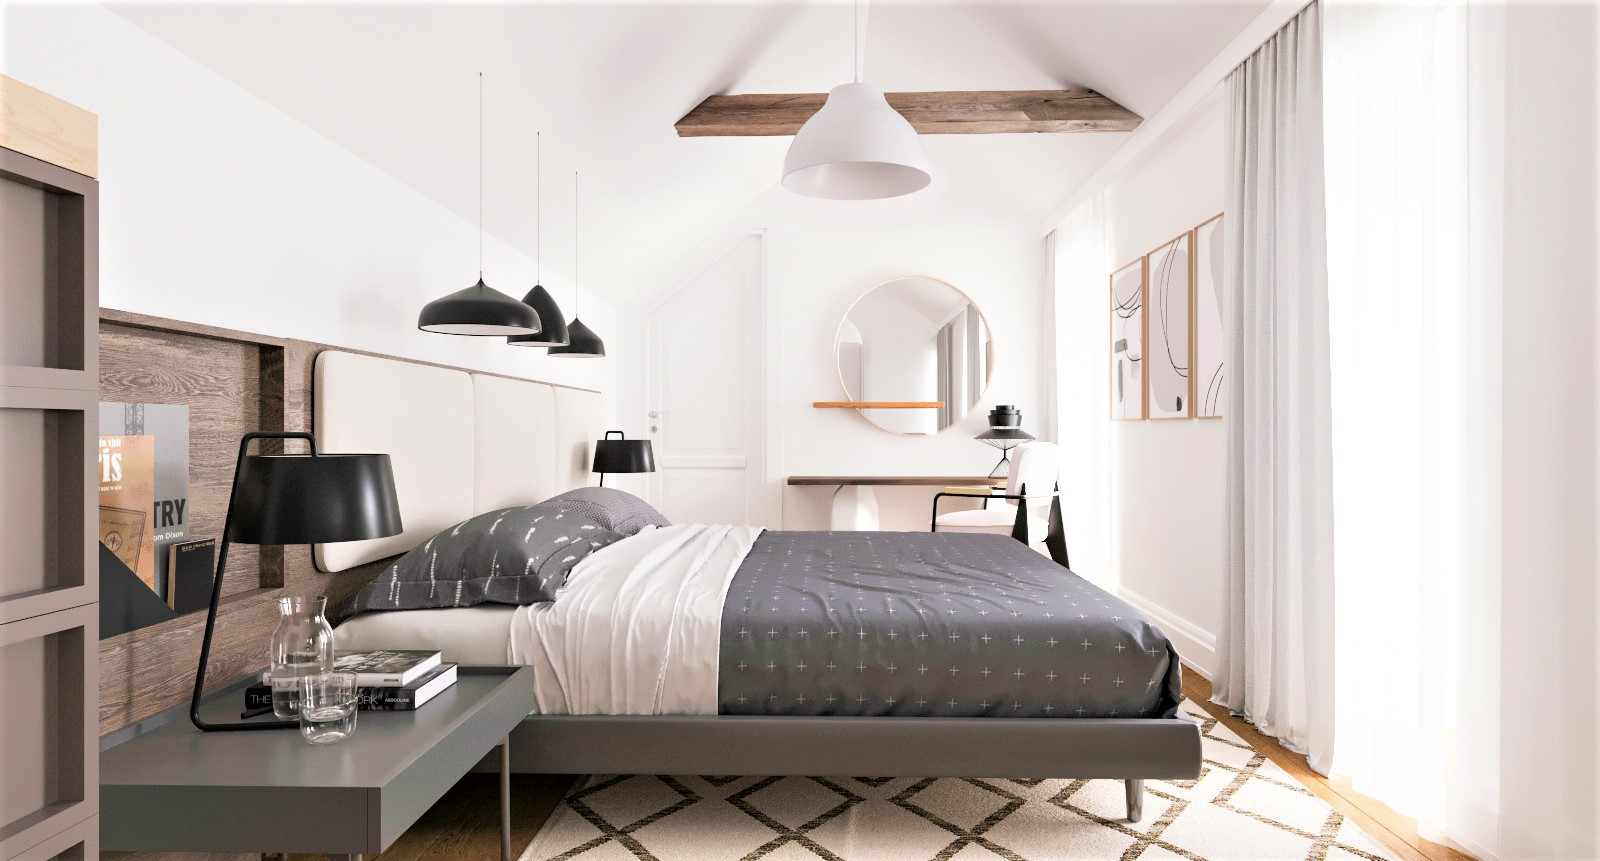 Bedroom_render_view_004.jpg